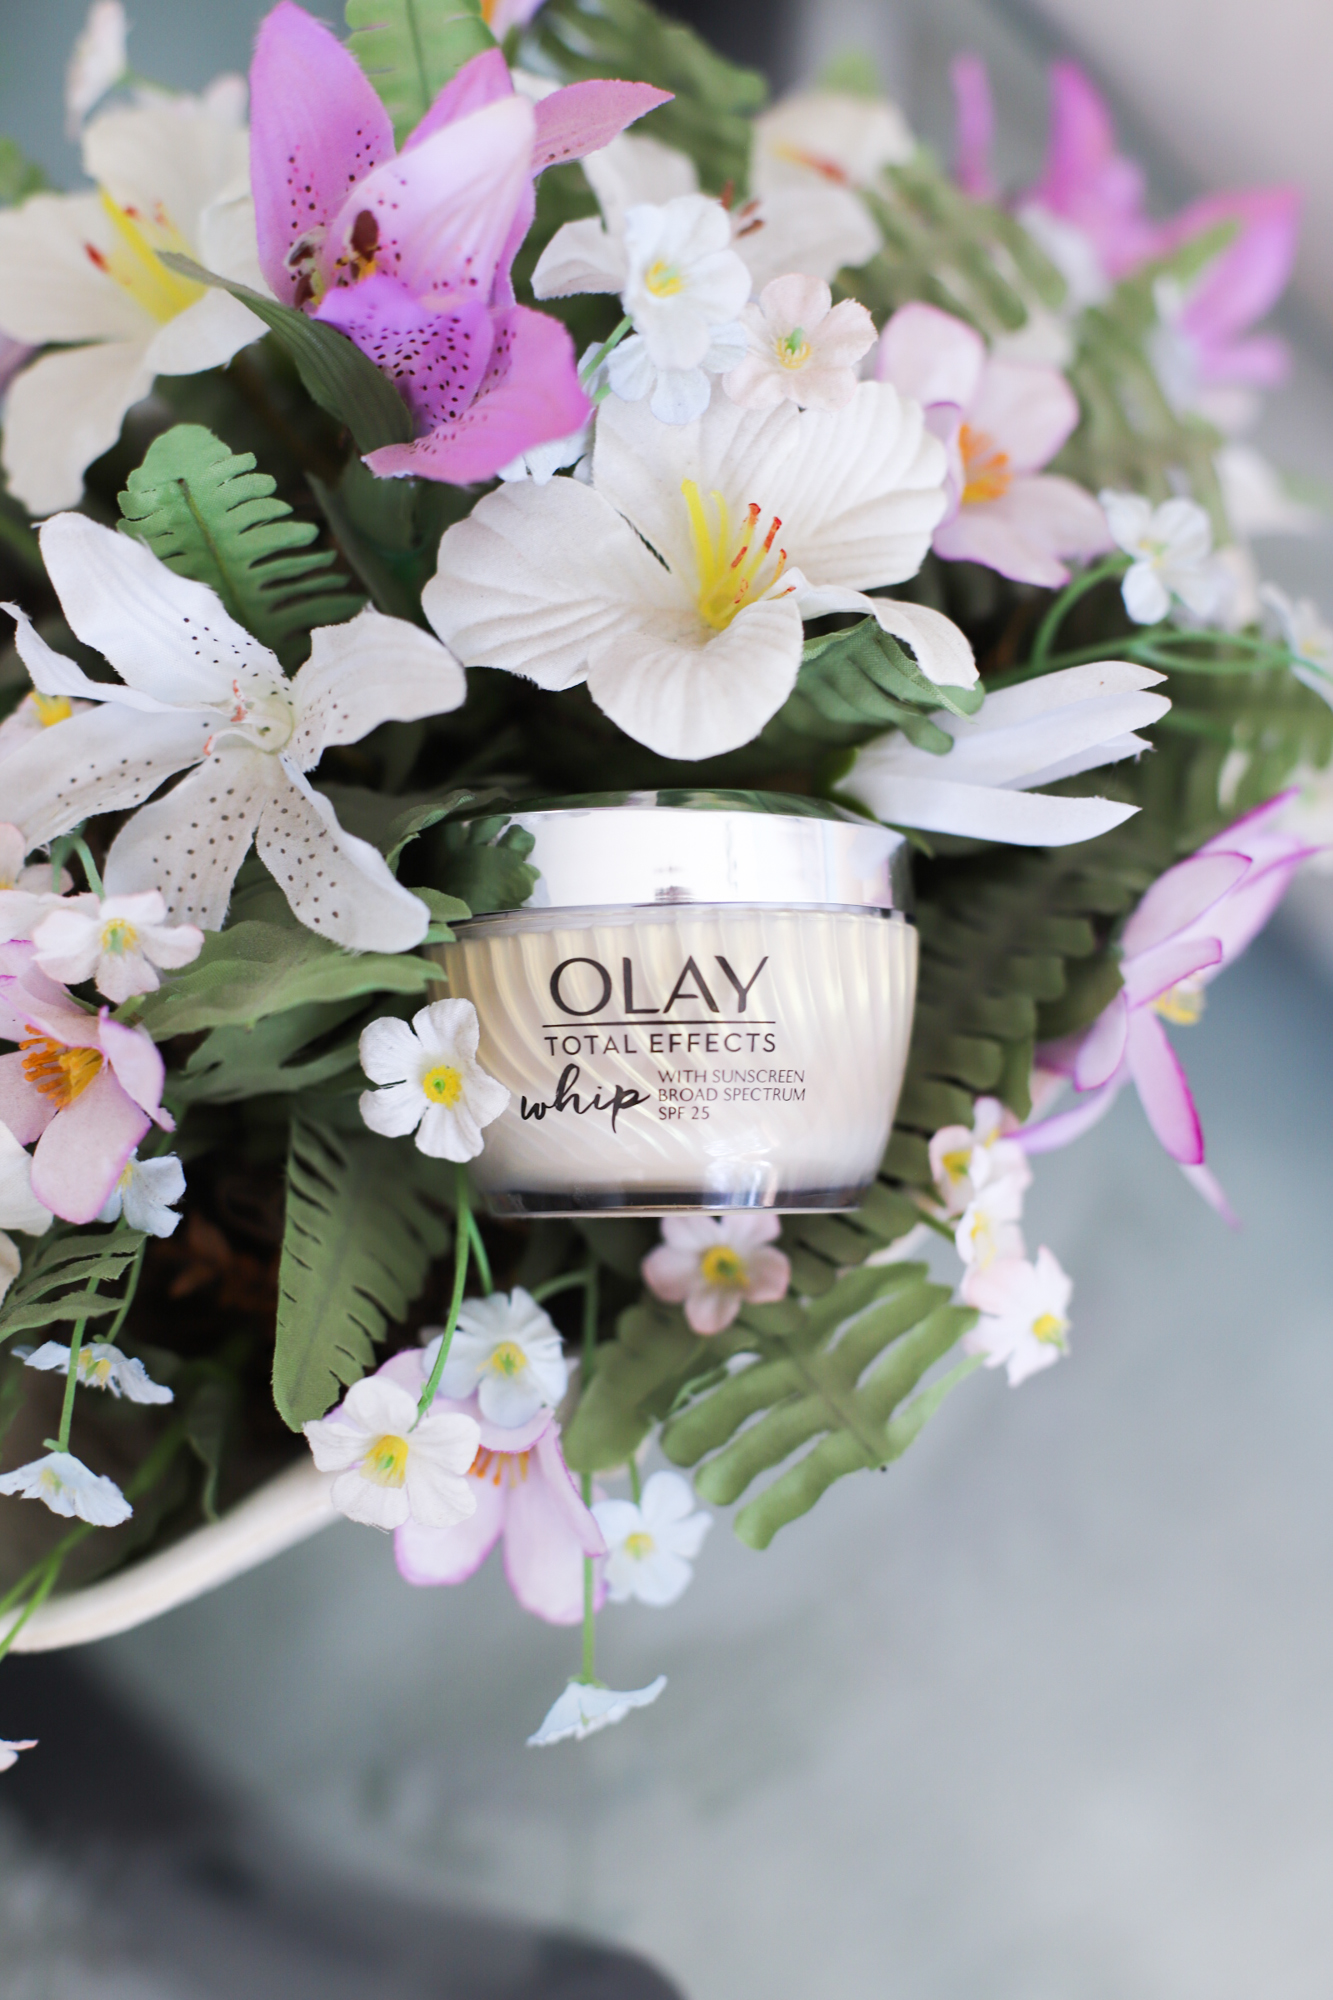 Olay Whips Luminous with SPF 25, summer beauty, moisturizer, the importance of SPF